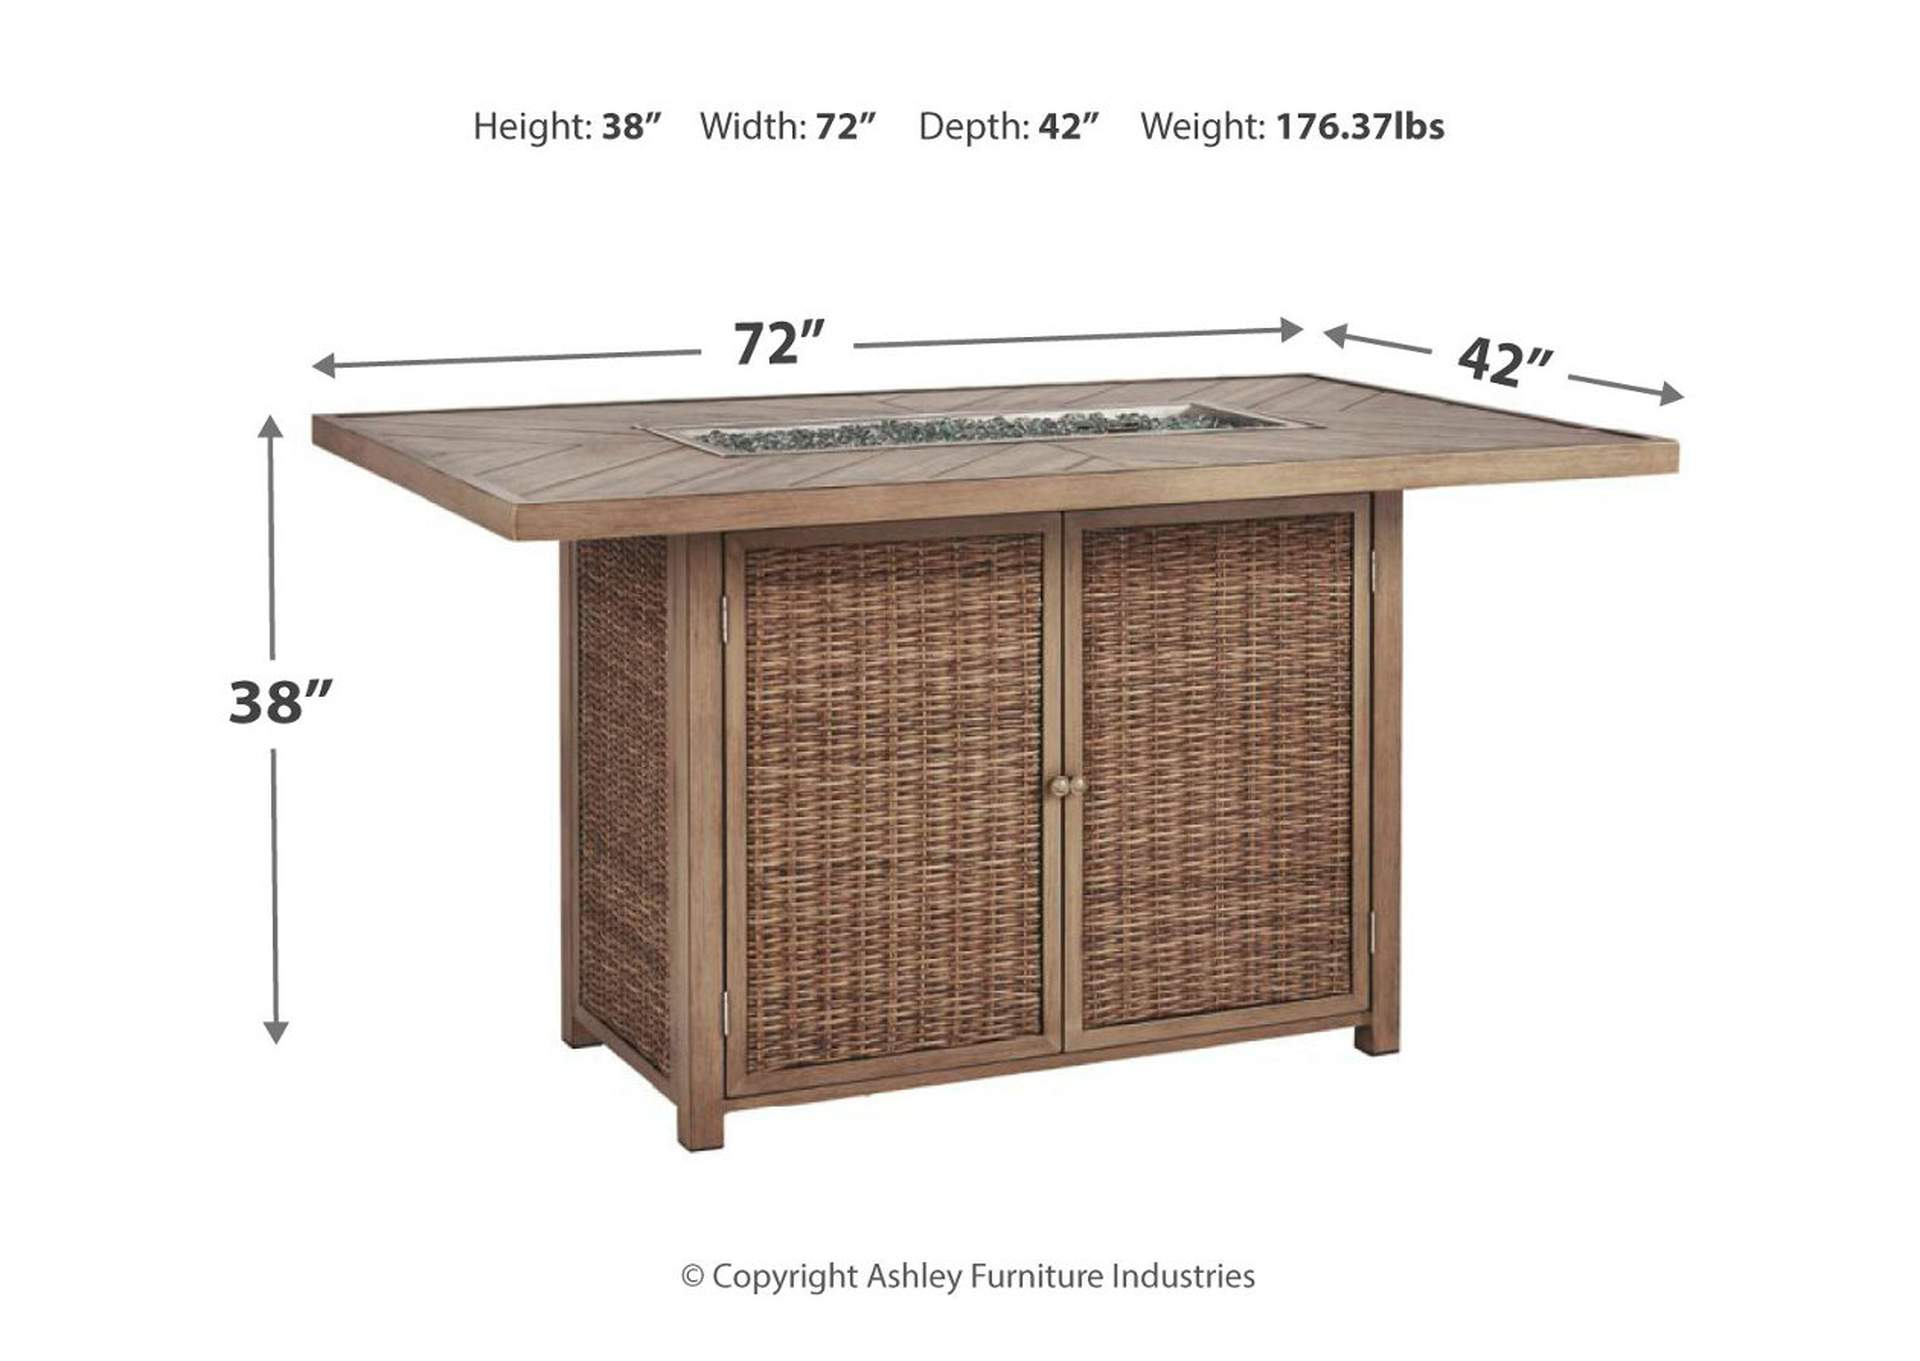 Beachcroft Beige Bar Table w/Fire Pit,Outdoor By Ashley